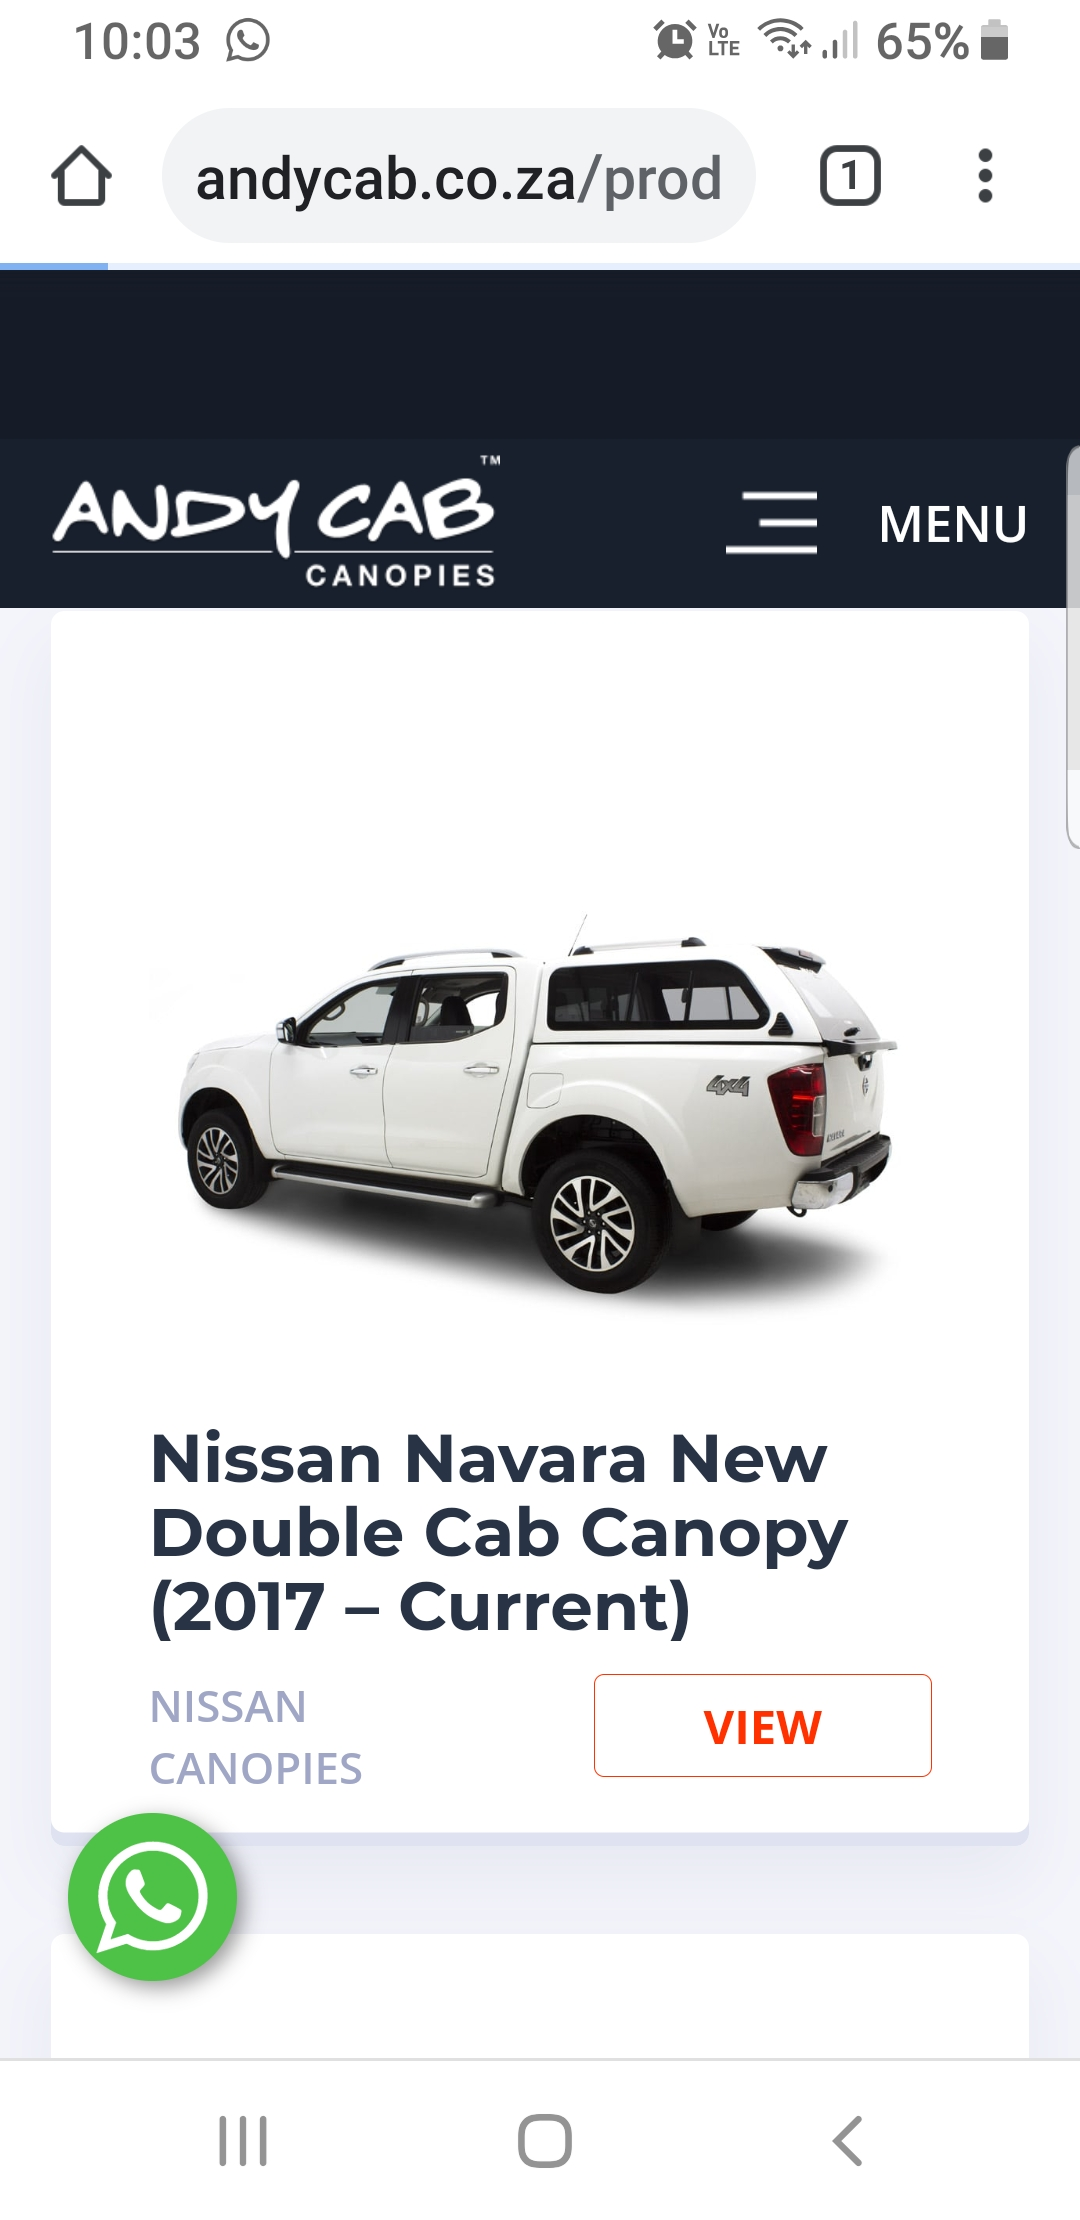 I buy canopies for cash.